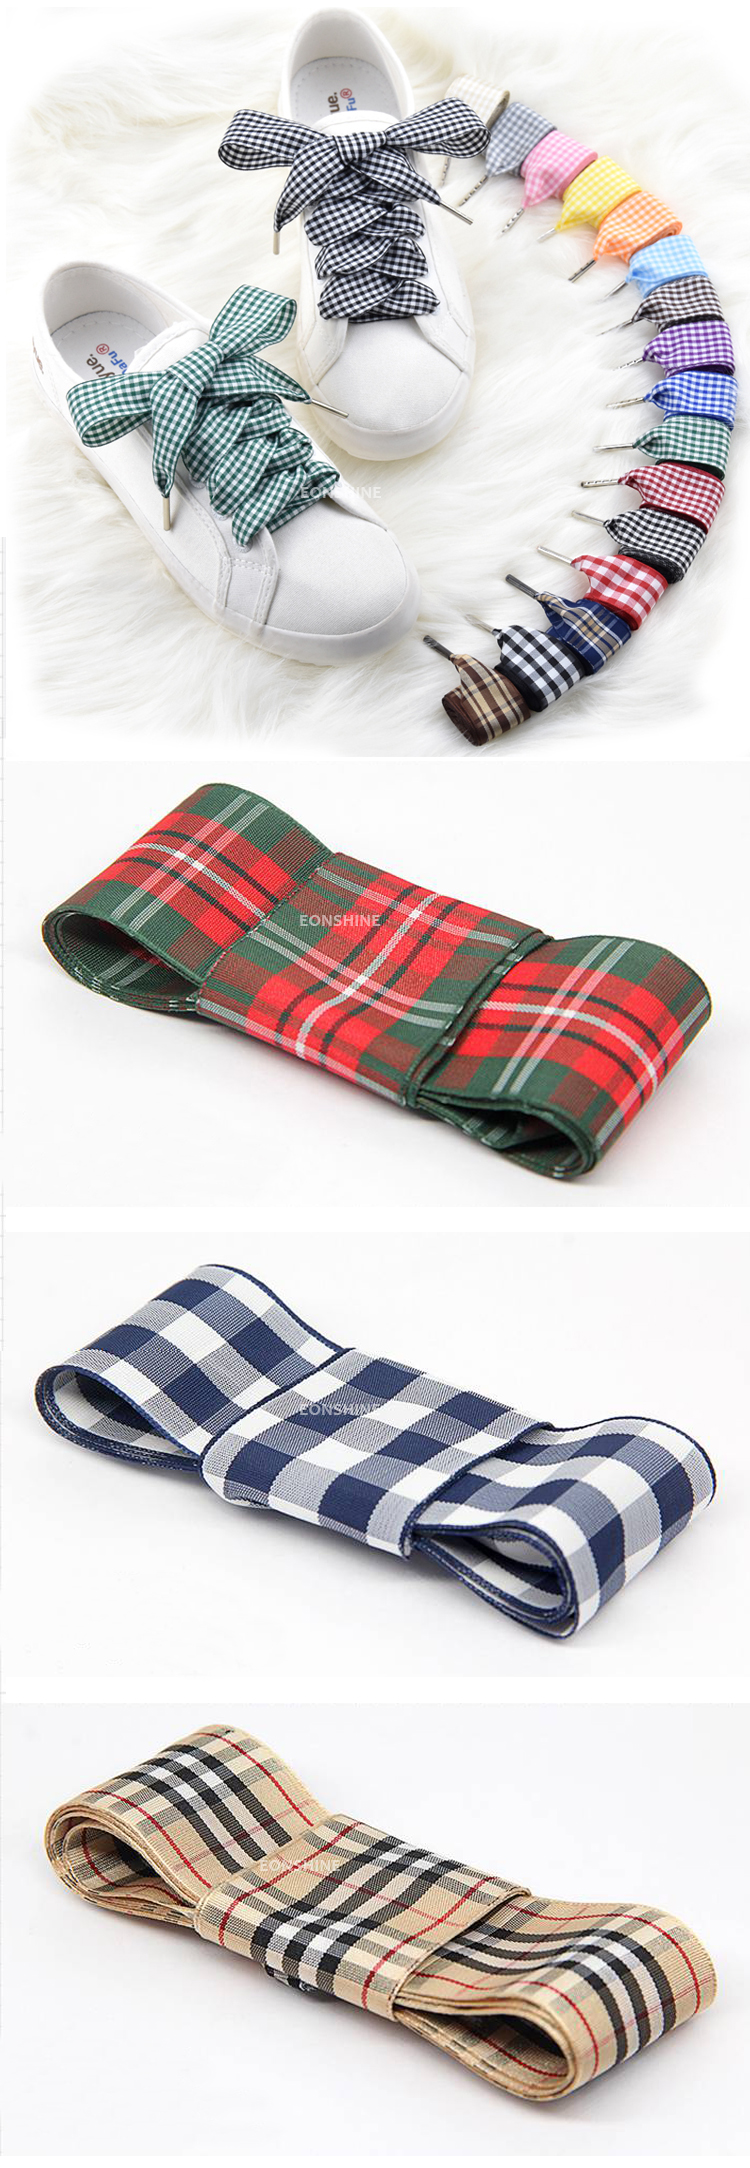 Fashion 120cm long 2.5 cm Wide Scottish Style Soft Polyester Plaid Ribbon Shoelaces for Youths